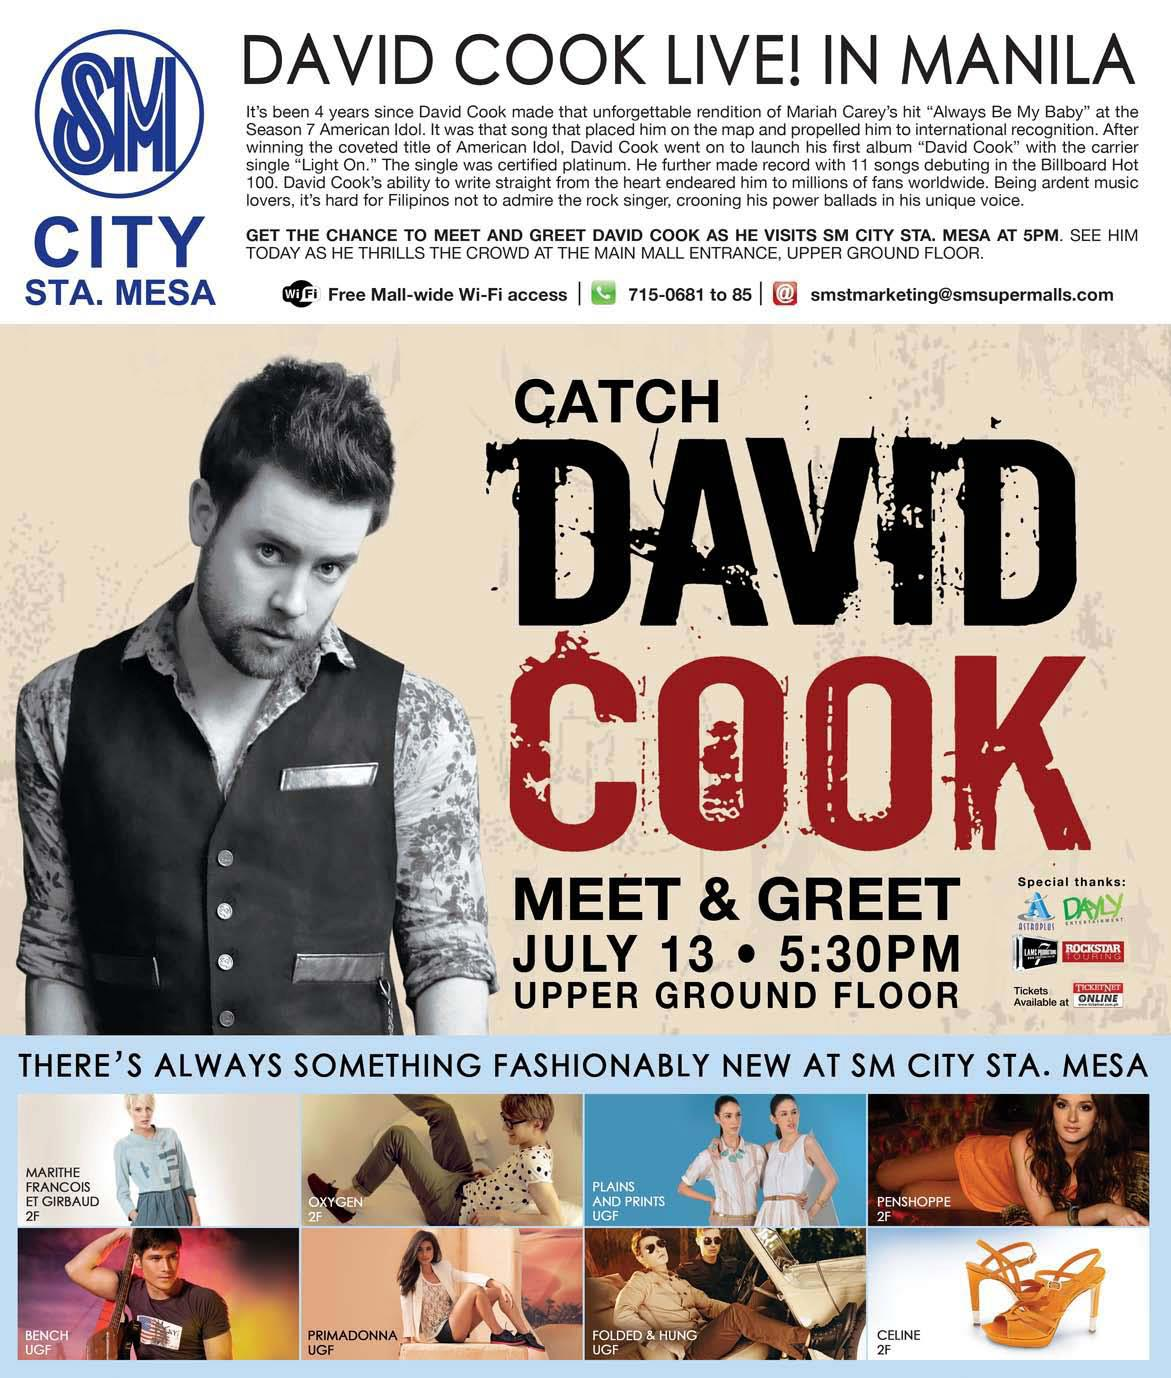 david cook meet and greet